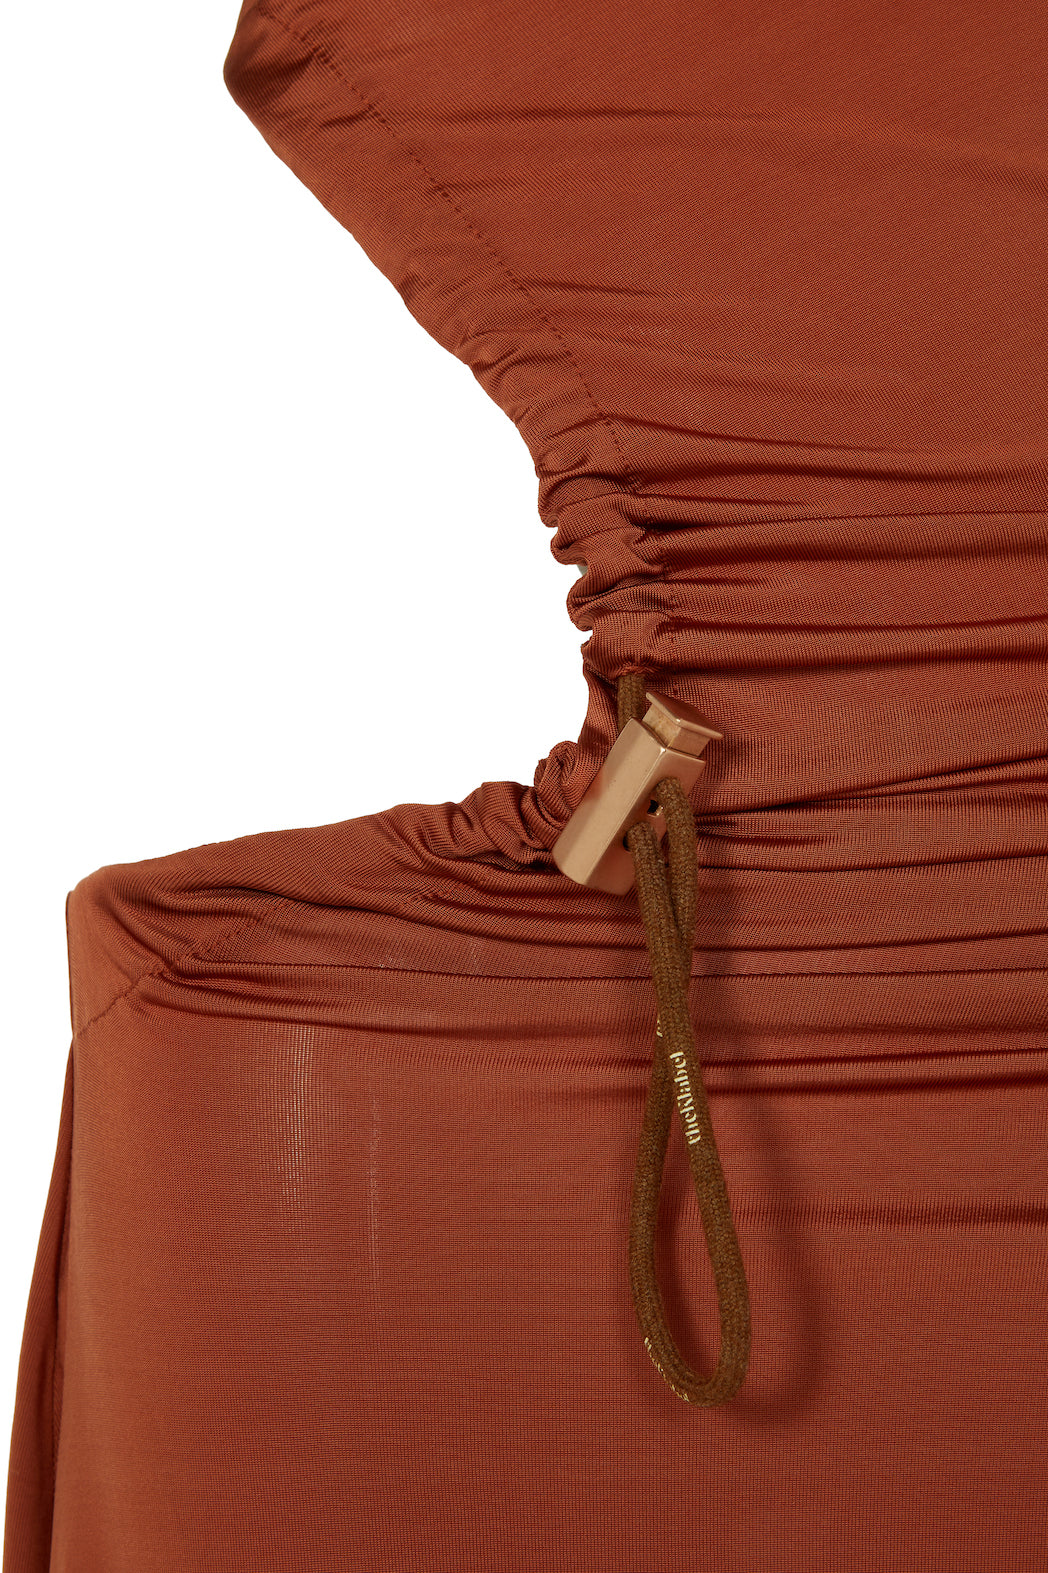 ACACIA Drawstring Cut-away Dress in Liquid Bronze